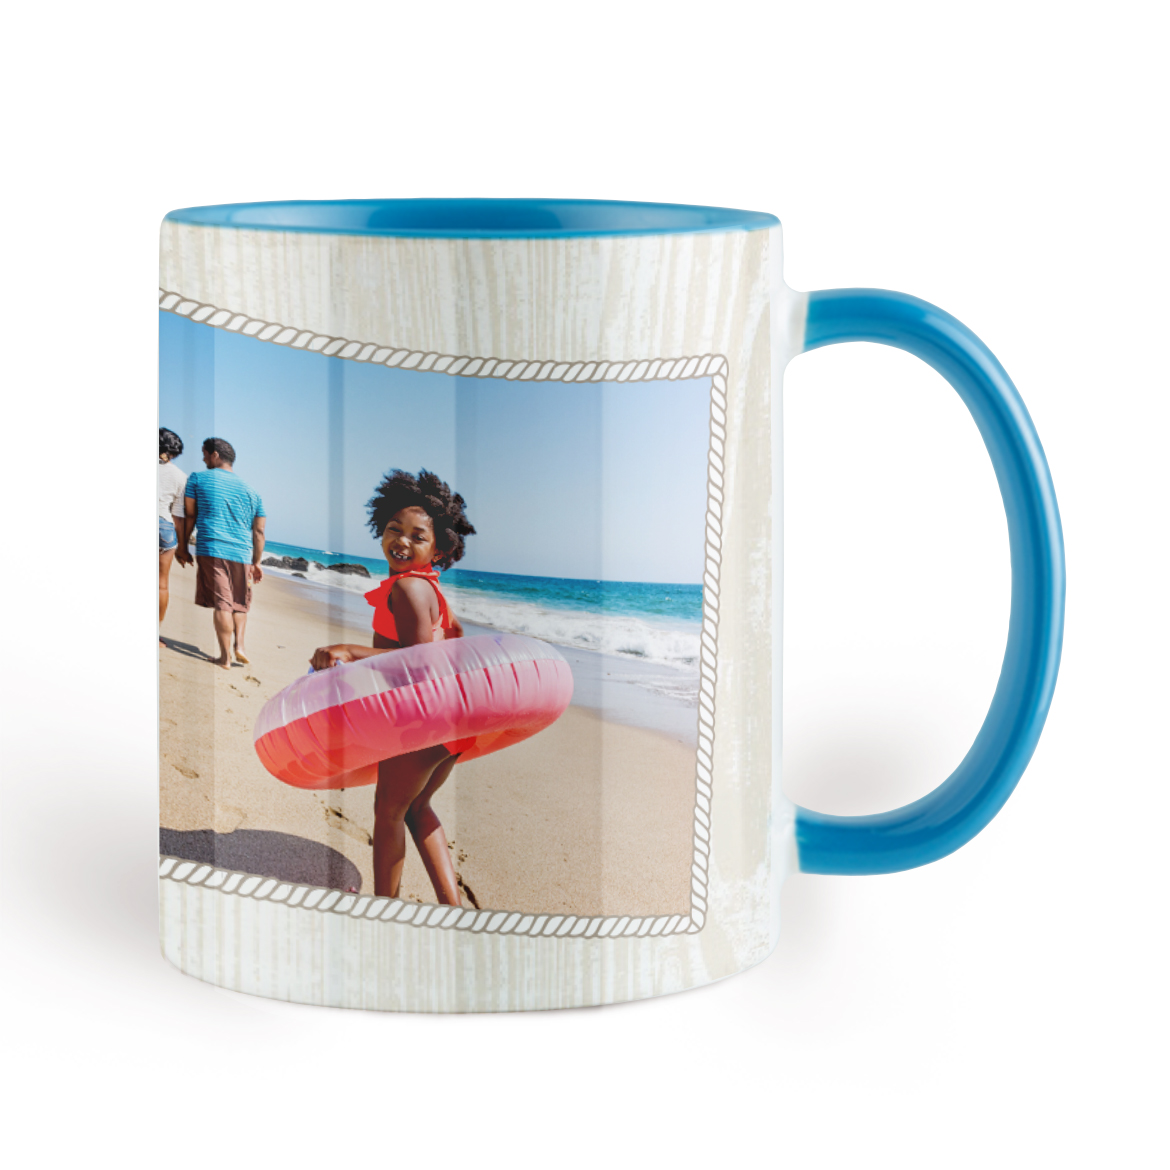 Sky Blue Coffee Mug 11 Oz Colorful Mugs Gifts